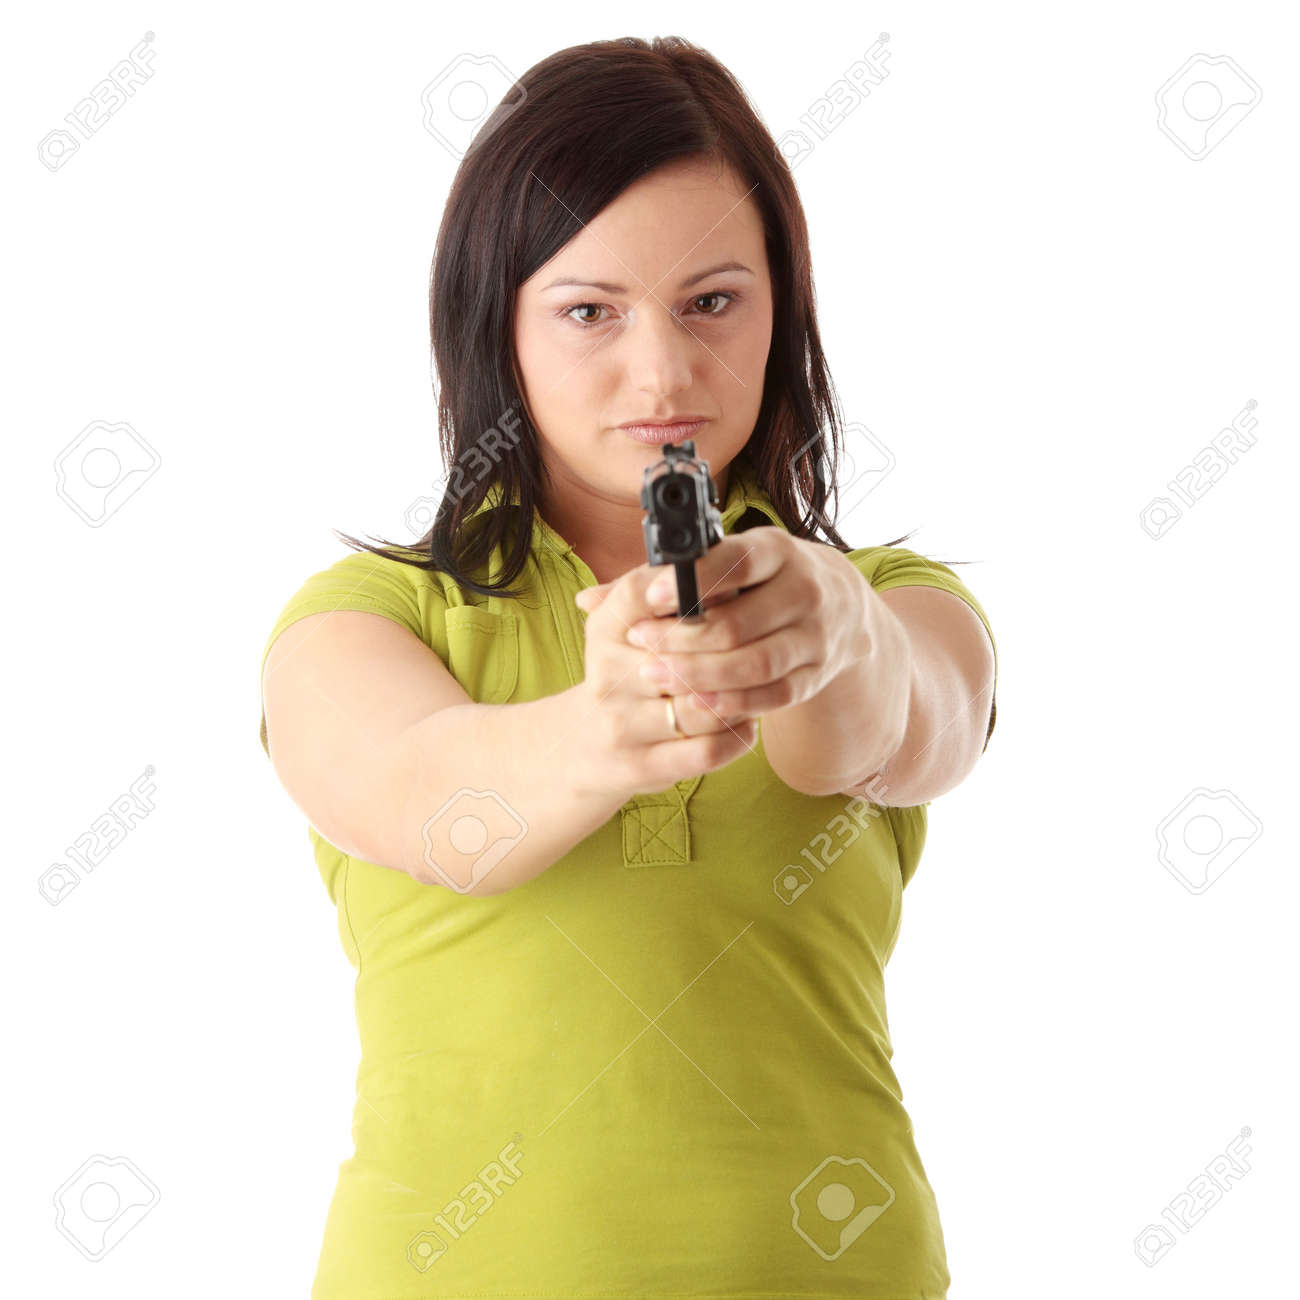 Angry woman with gun isolated on white Stock Photo - 5770036